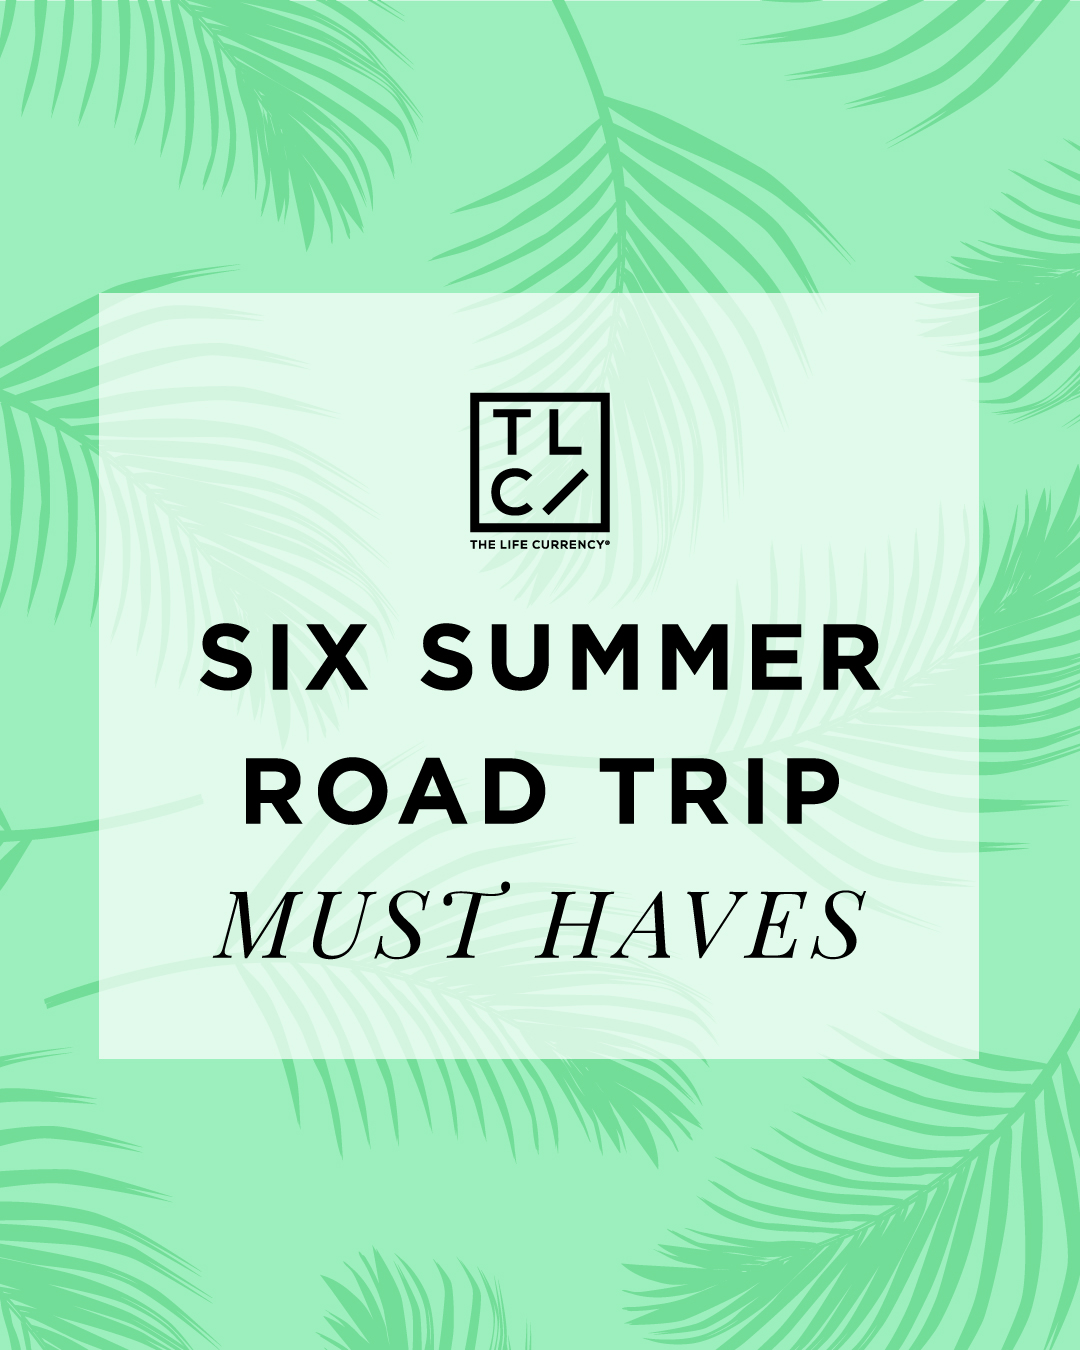 Six Summer Road Trip Must Haves